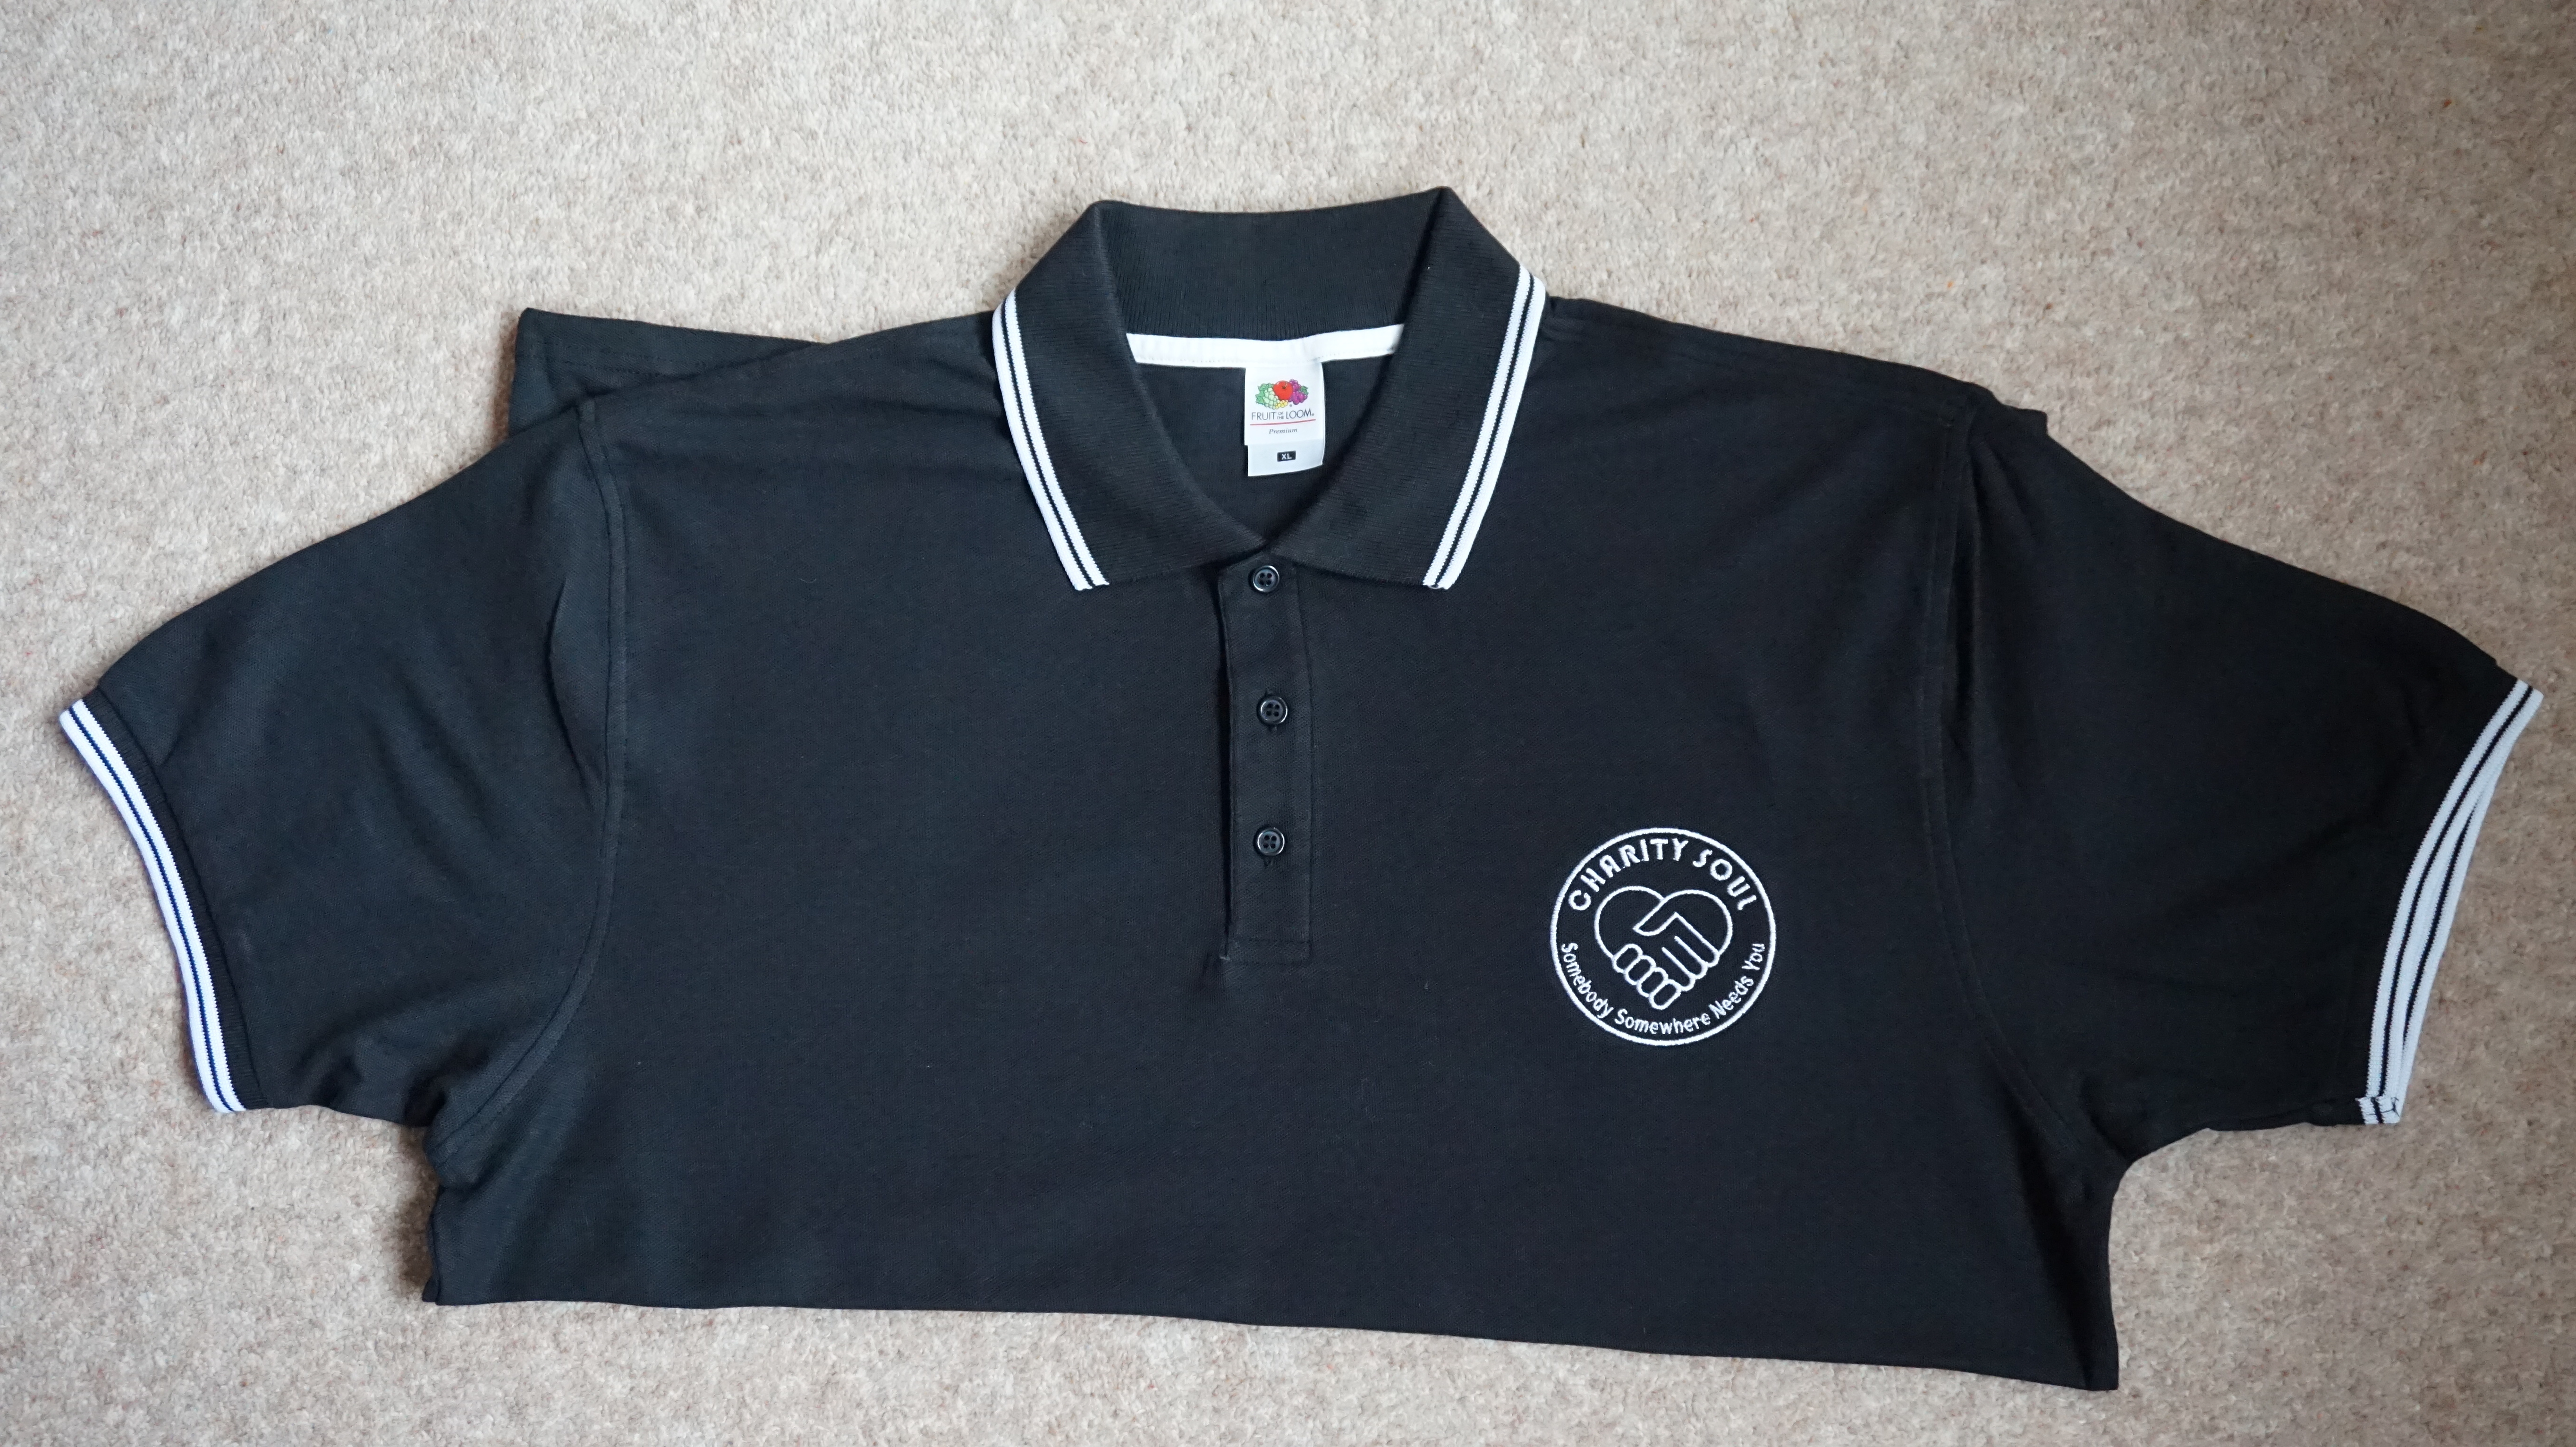 Charity Soul Polo Shirt